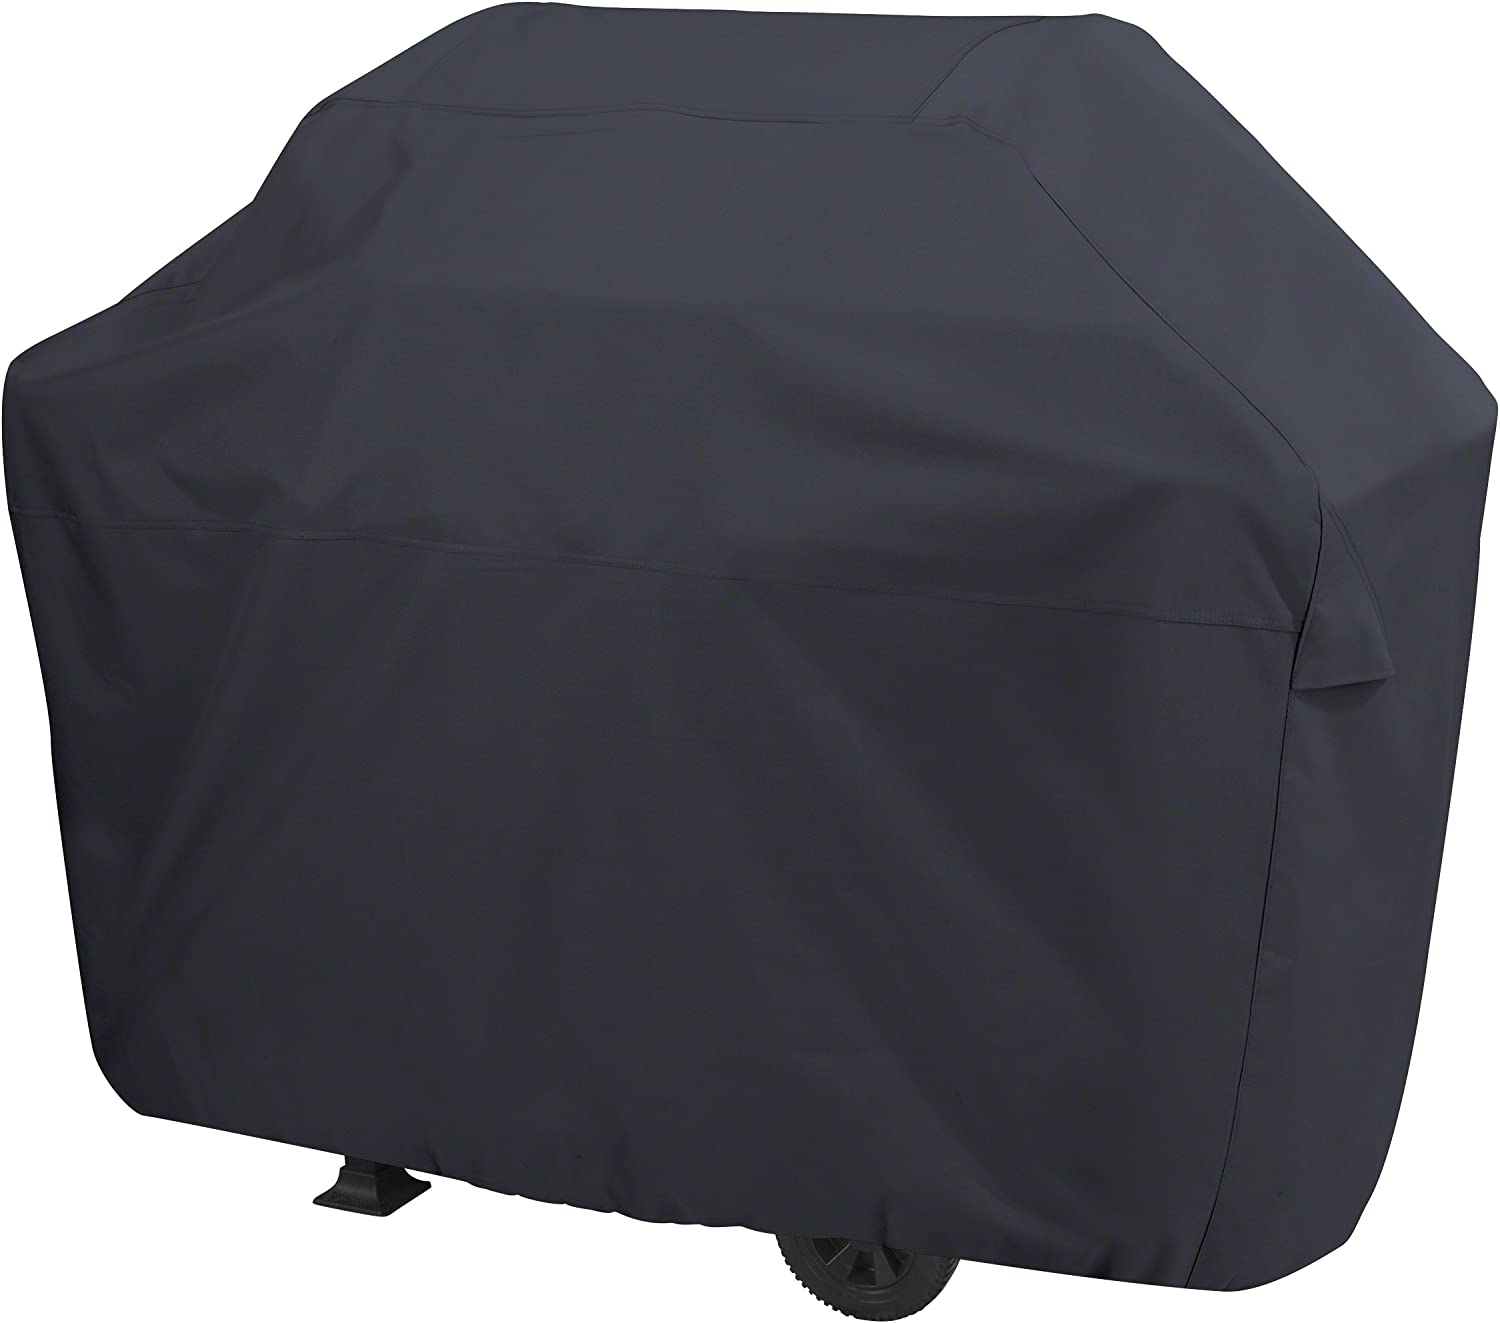 AmazonBasics Gas Grill Barbecue Cover, Medium / Small, Black